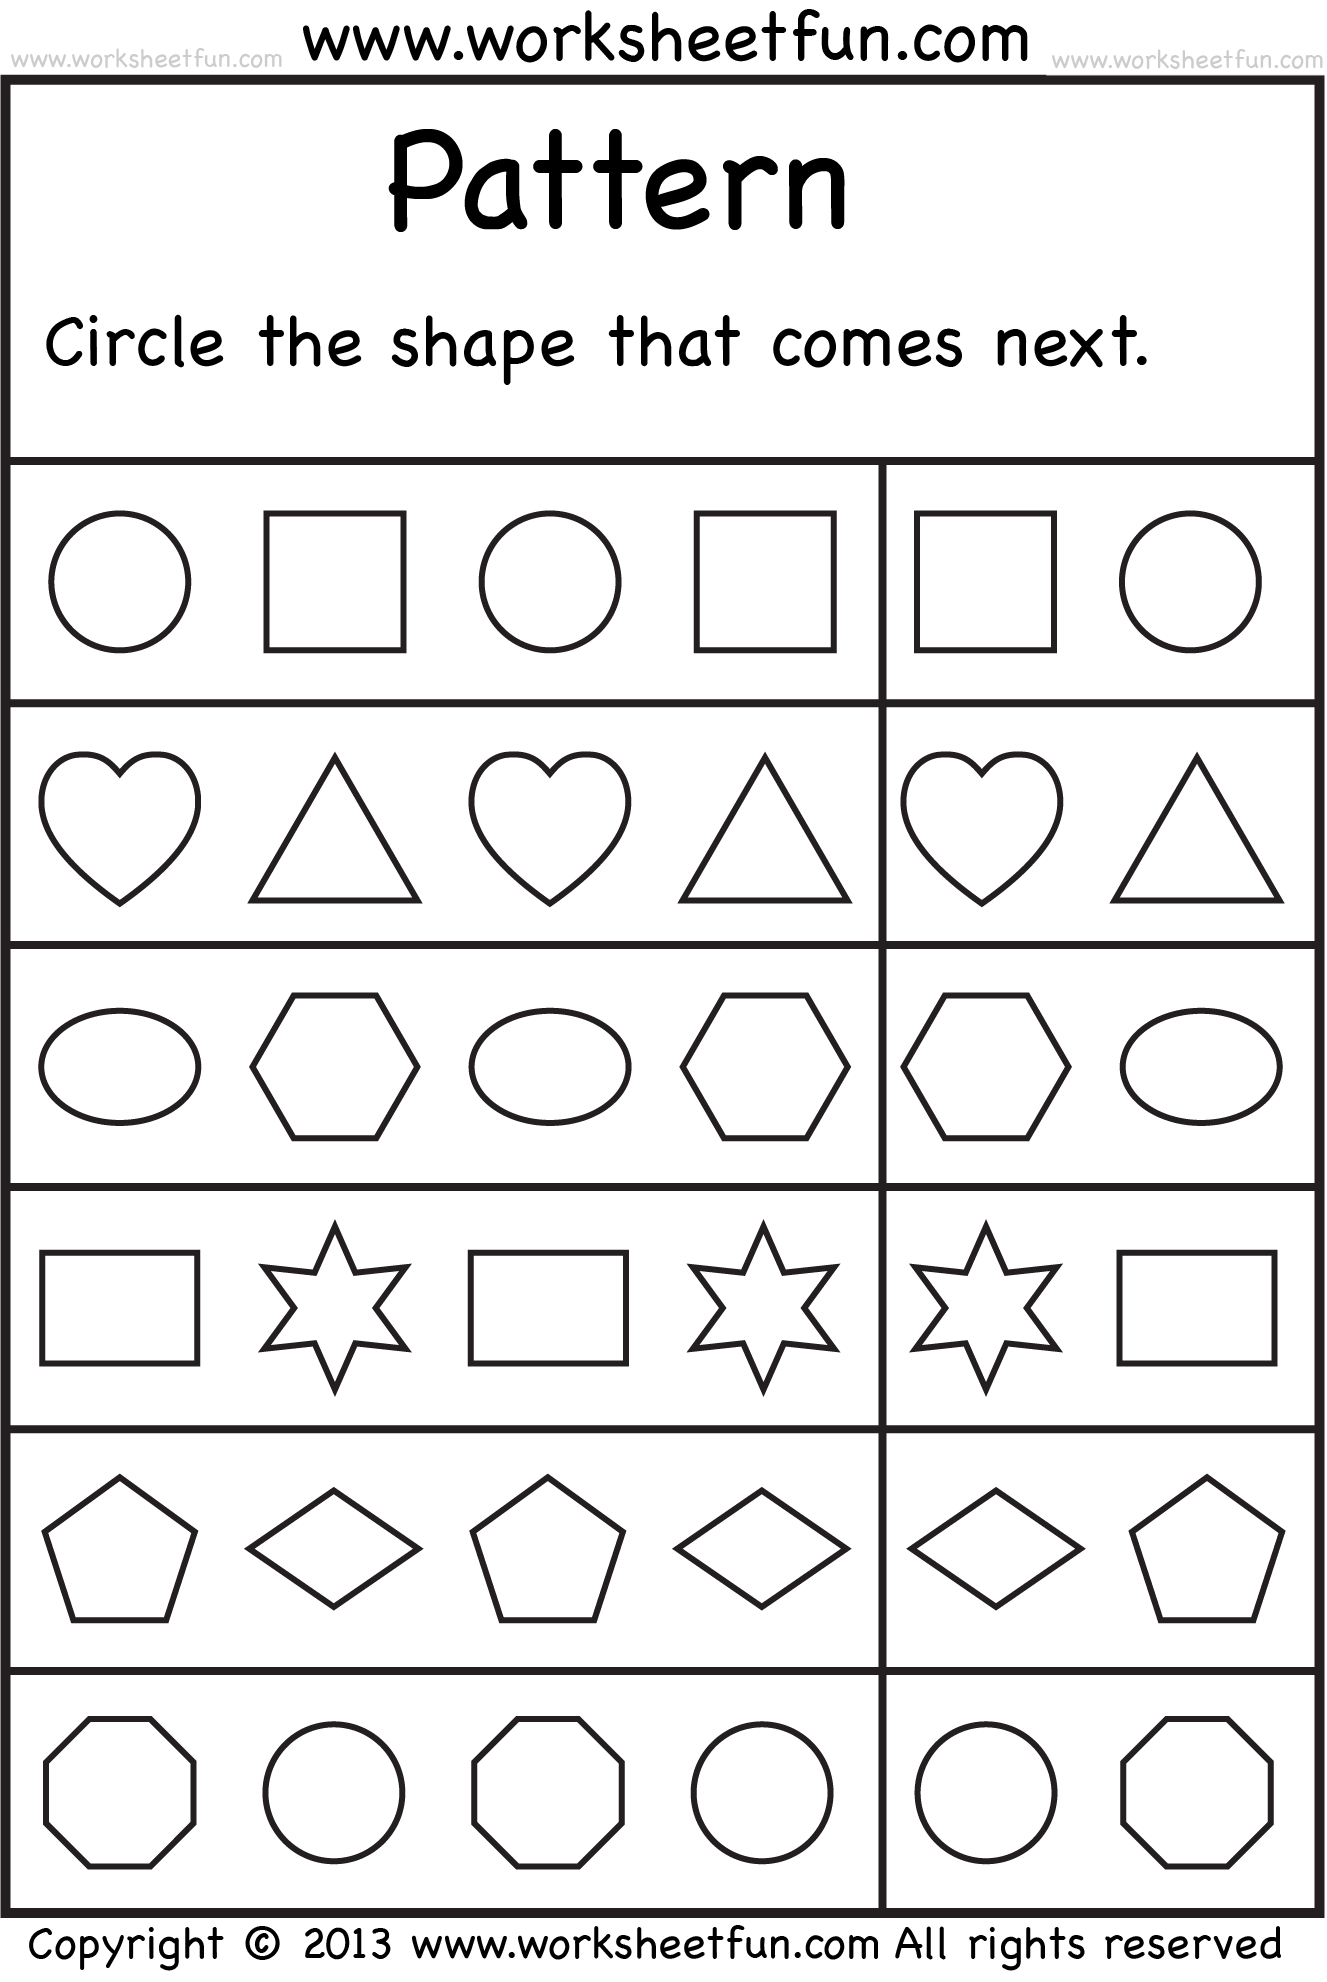 Weirdmailus  Nice  Images About School Worksheets On Pinterest  Number Words  With Interesting  Images About School Worksheets On Pinterest  Number Words Alphabet Worksheets And Free Printable Kindergarten Worksheets With Charming Elements Of Short Story Worksheet Also Reading Main Idea Worksheet In Addition Elements And Principles Of Art Worksheets And Naming Ionic Compounds Worksheets As Well As  Digit Subtraction Worksheets With Regrouping Additionally Weather Worksheet For Kindergarten From Pinterestcom With Weirdmailus  Interesting  Images About School Worksheets On Pinterest  Number Words  With Charming  Images About School Worksheets On Pinterest  Number Words Alphabet Worksheets And Free Printable Kindergarten Worksheets And Nice Elements Of Short Story Worksheet Also Reading Main Idea Worksheet In Addition Elements And Principles Of Art Worksheets From Pinterestcom